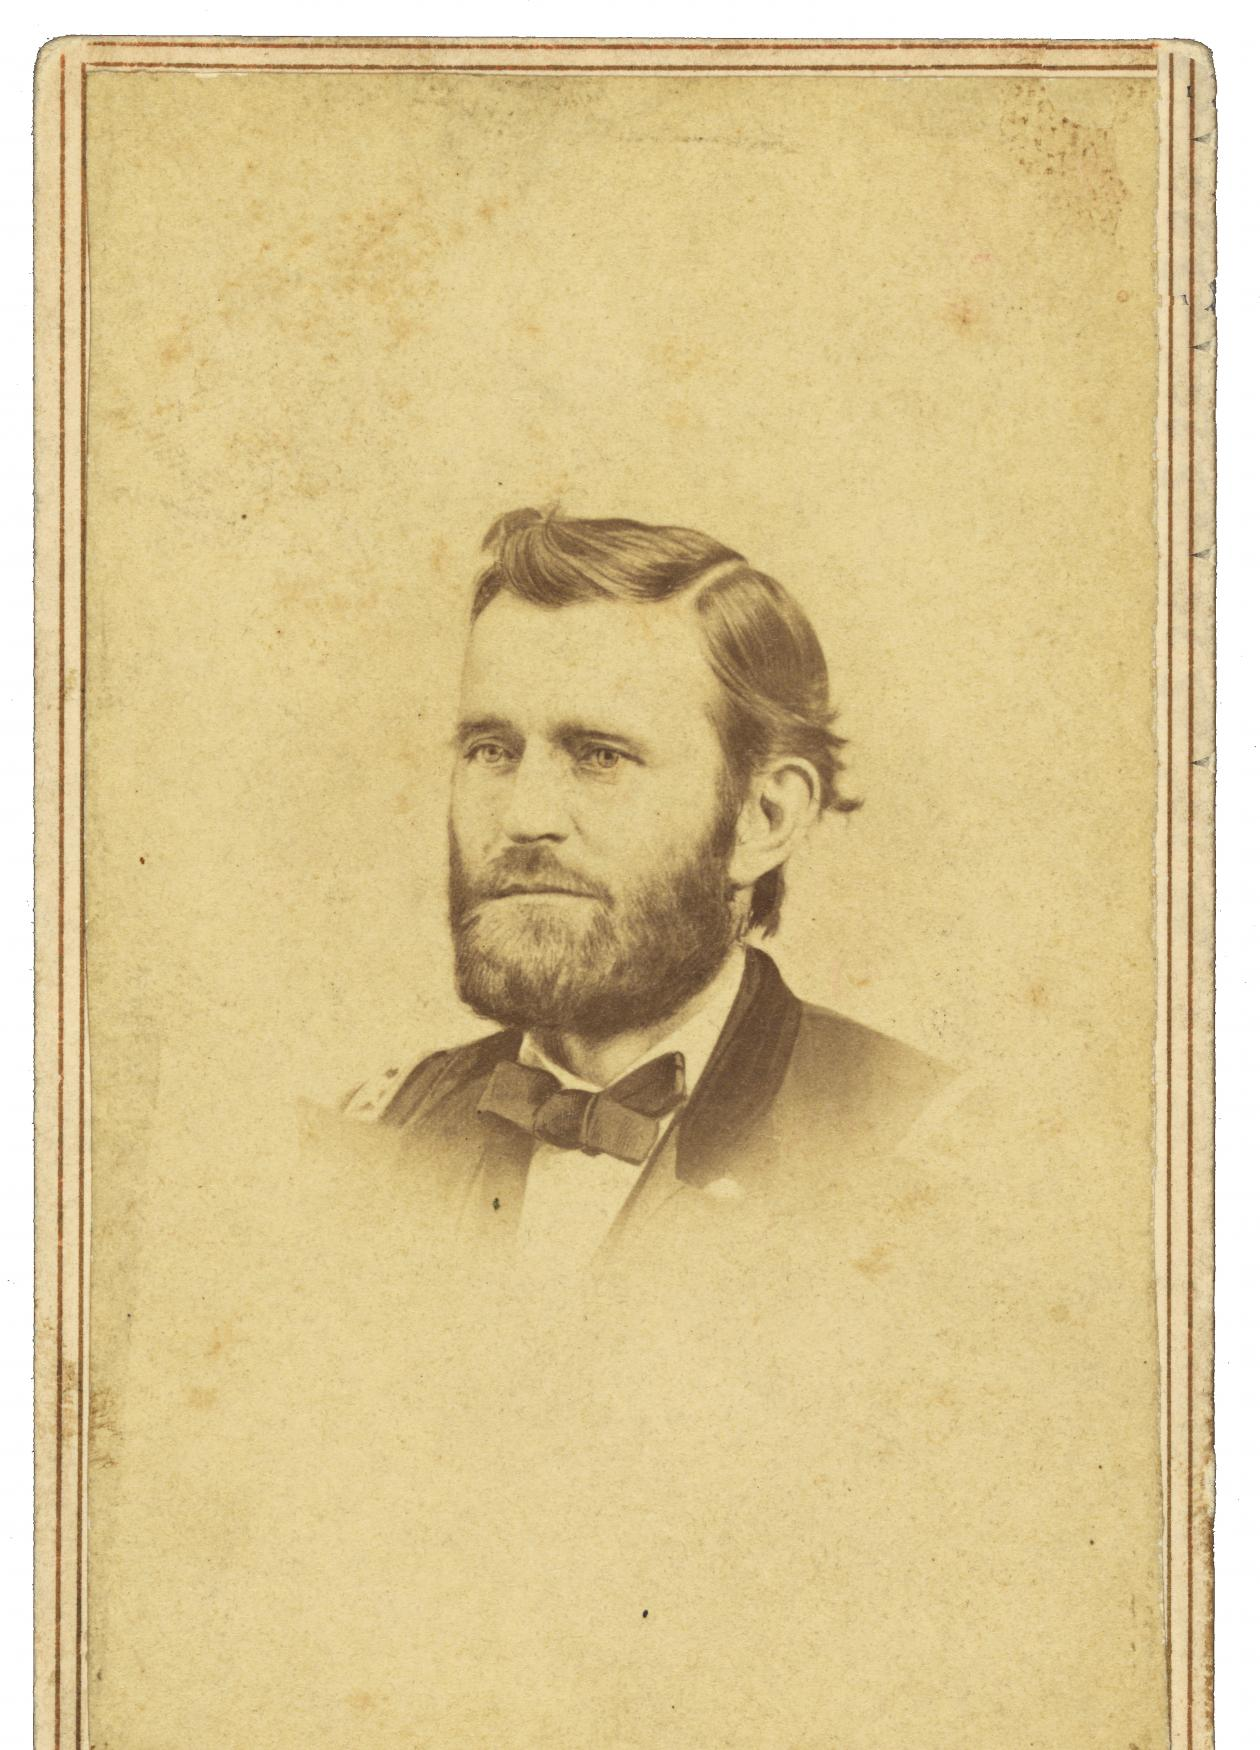 Healthy Food Essays Portrait Of Ulysses S Grant Done In Sepia Compare And Contrast Essay Topics For High School Students also Essay Paper Writing Service What Drove Ulysses Grant To Write About The Civil War  National  Essay On Health Care Reform